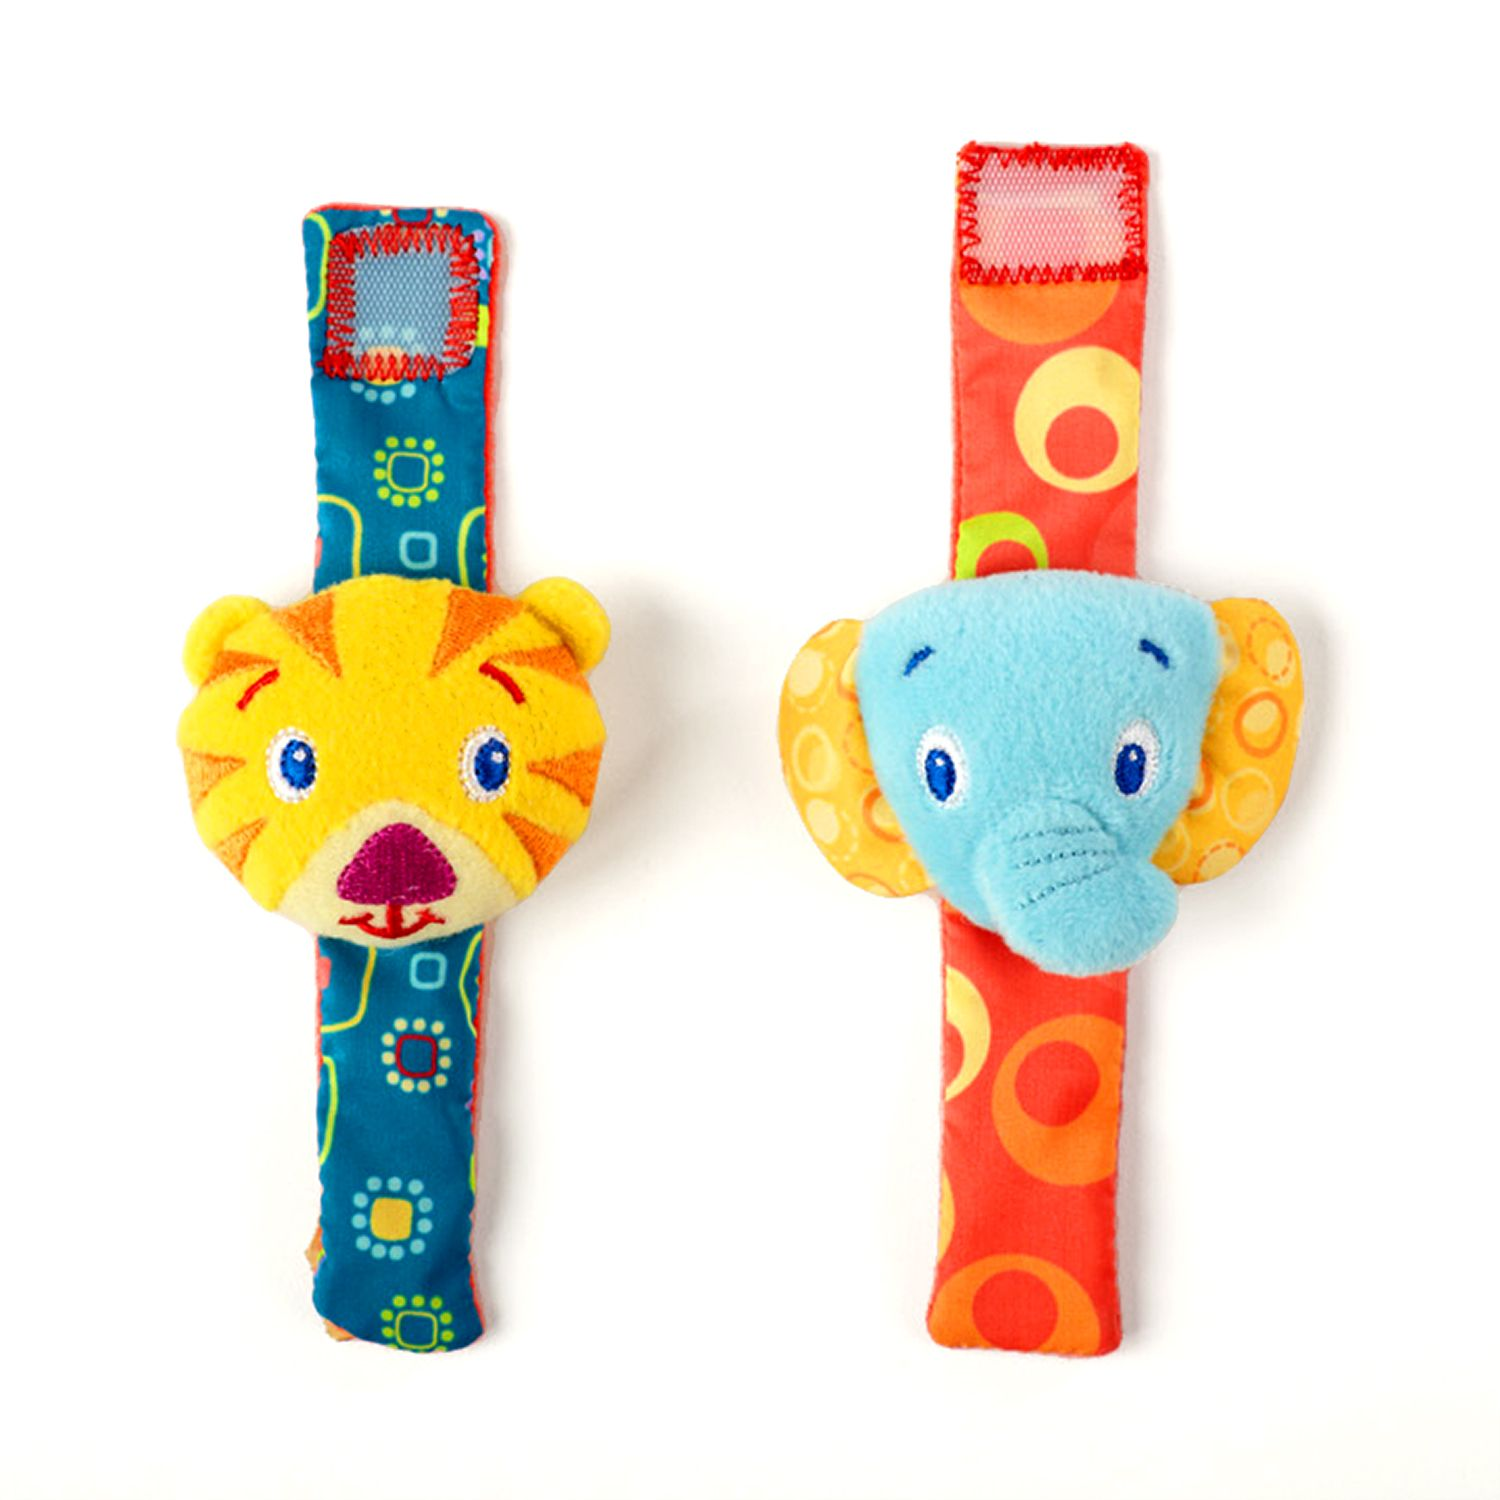 Bright Years Wrist Rattles Very Affordable And Cute Baby Activity Toys Bright Starts Rattles